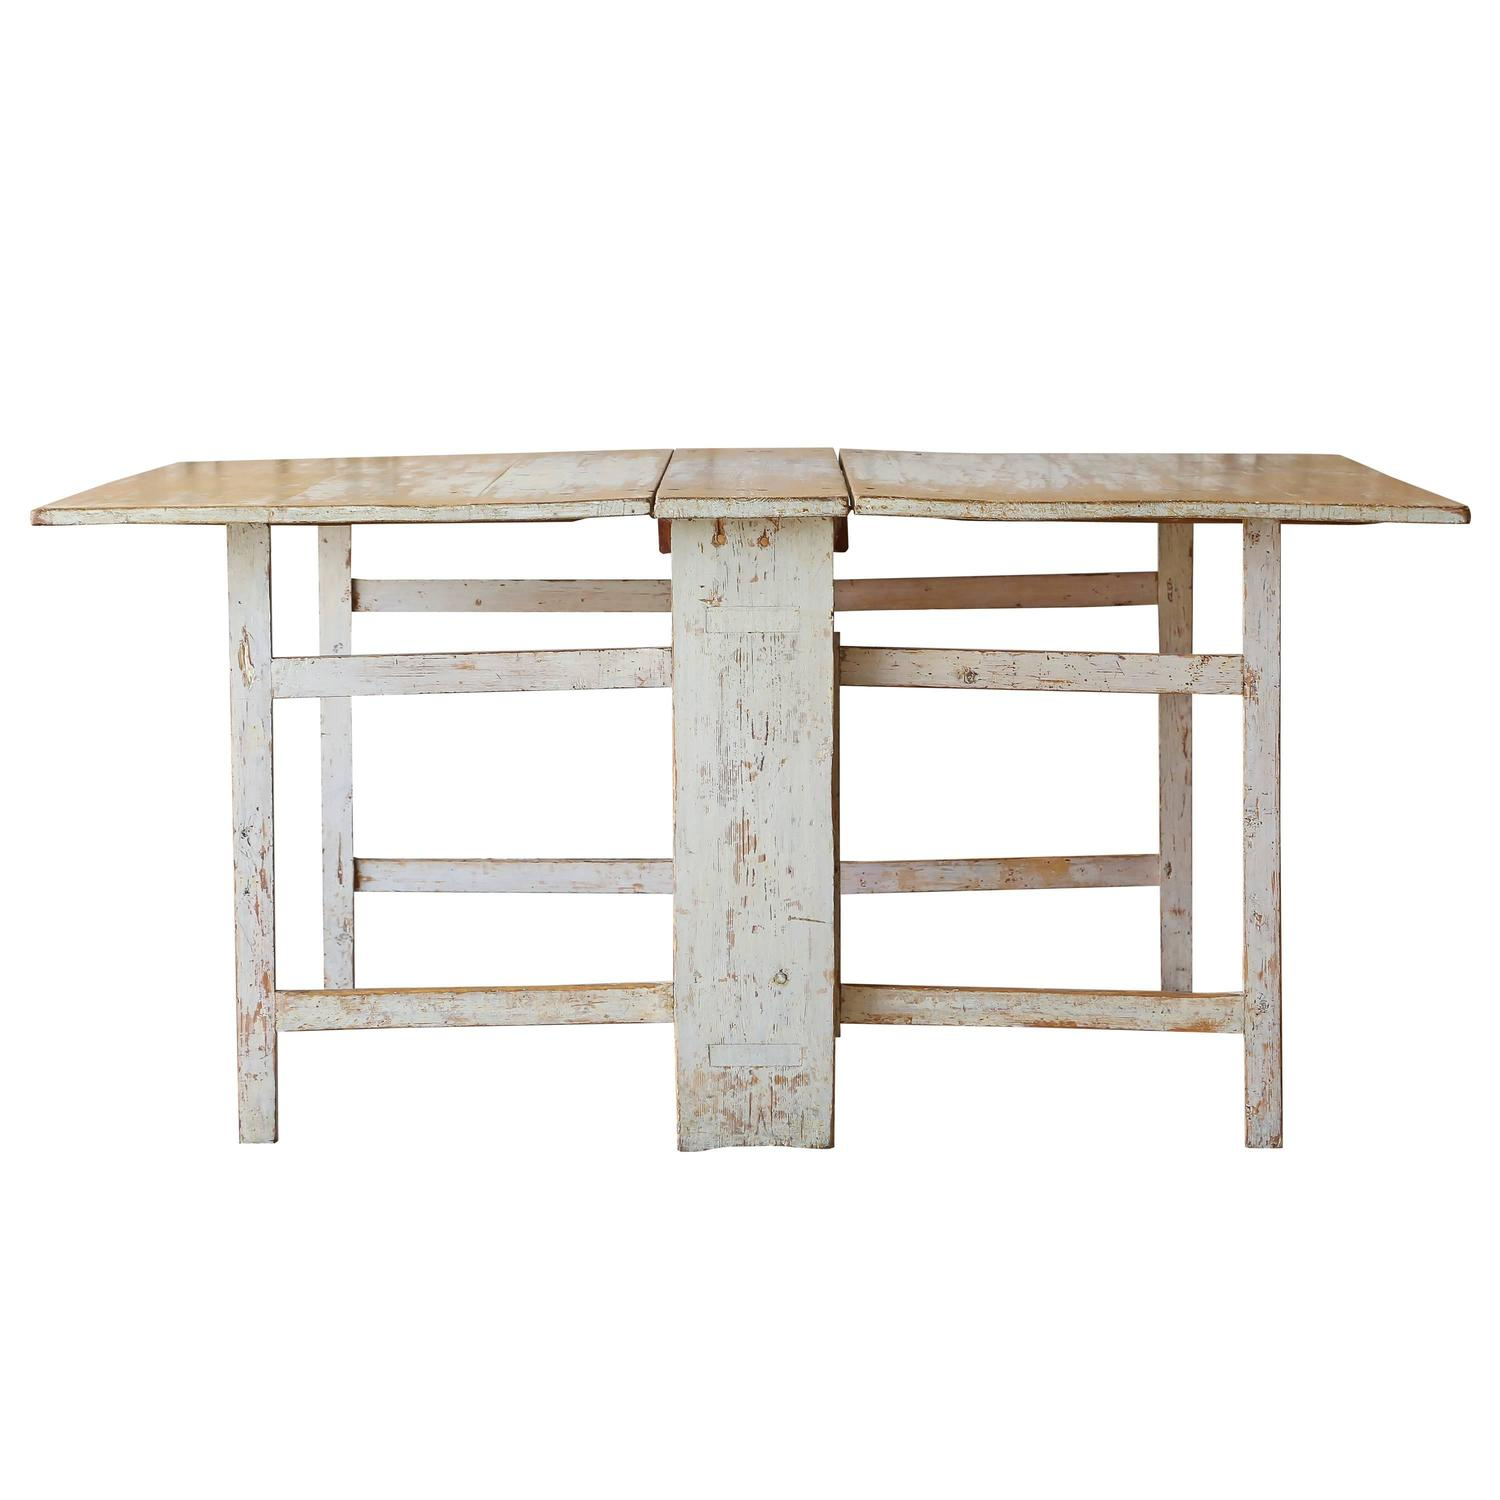 Antique gustavian drop leaf dining table at 1stdibs for Drop leaf dining table